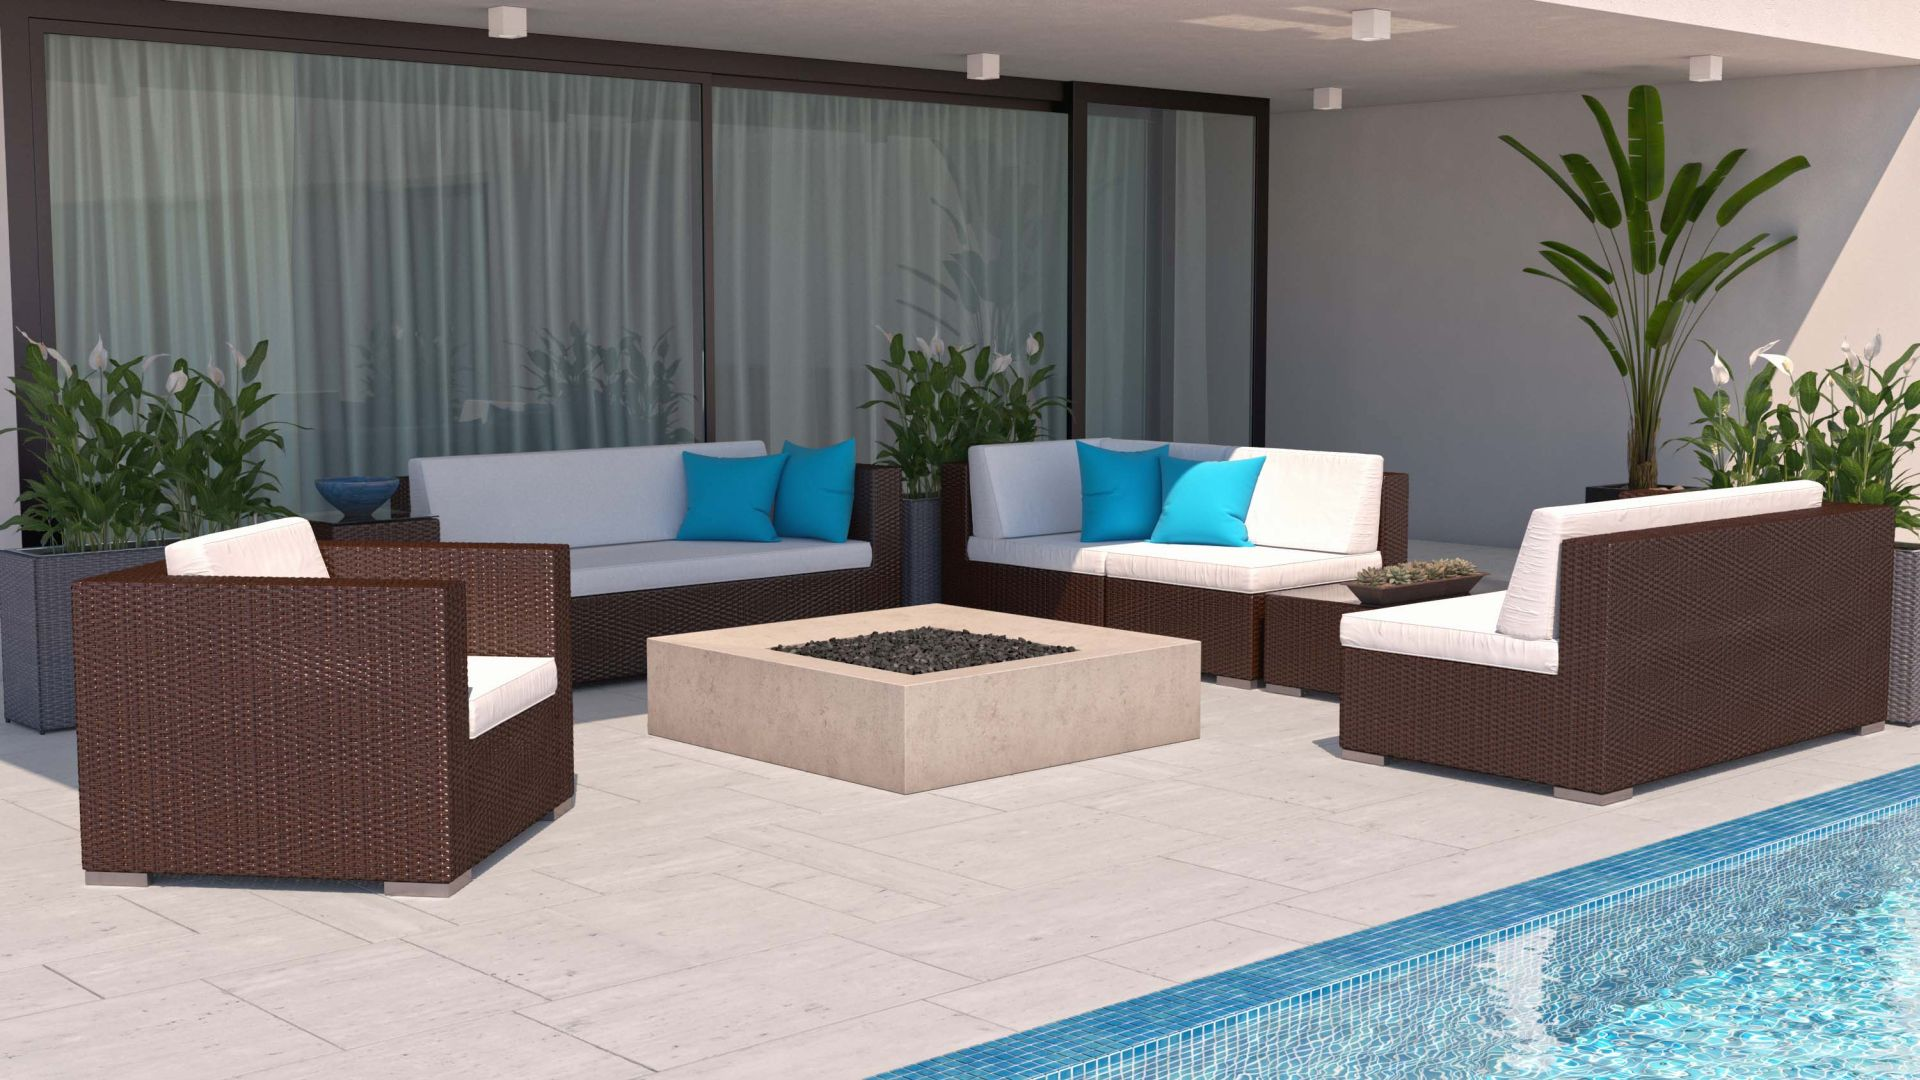 Salon De Jardin Artelia Artelia | Order Low Priced Rattan Sofa Suite Epona L For